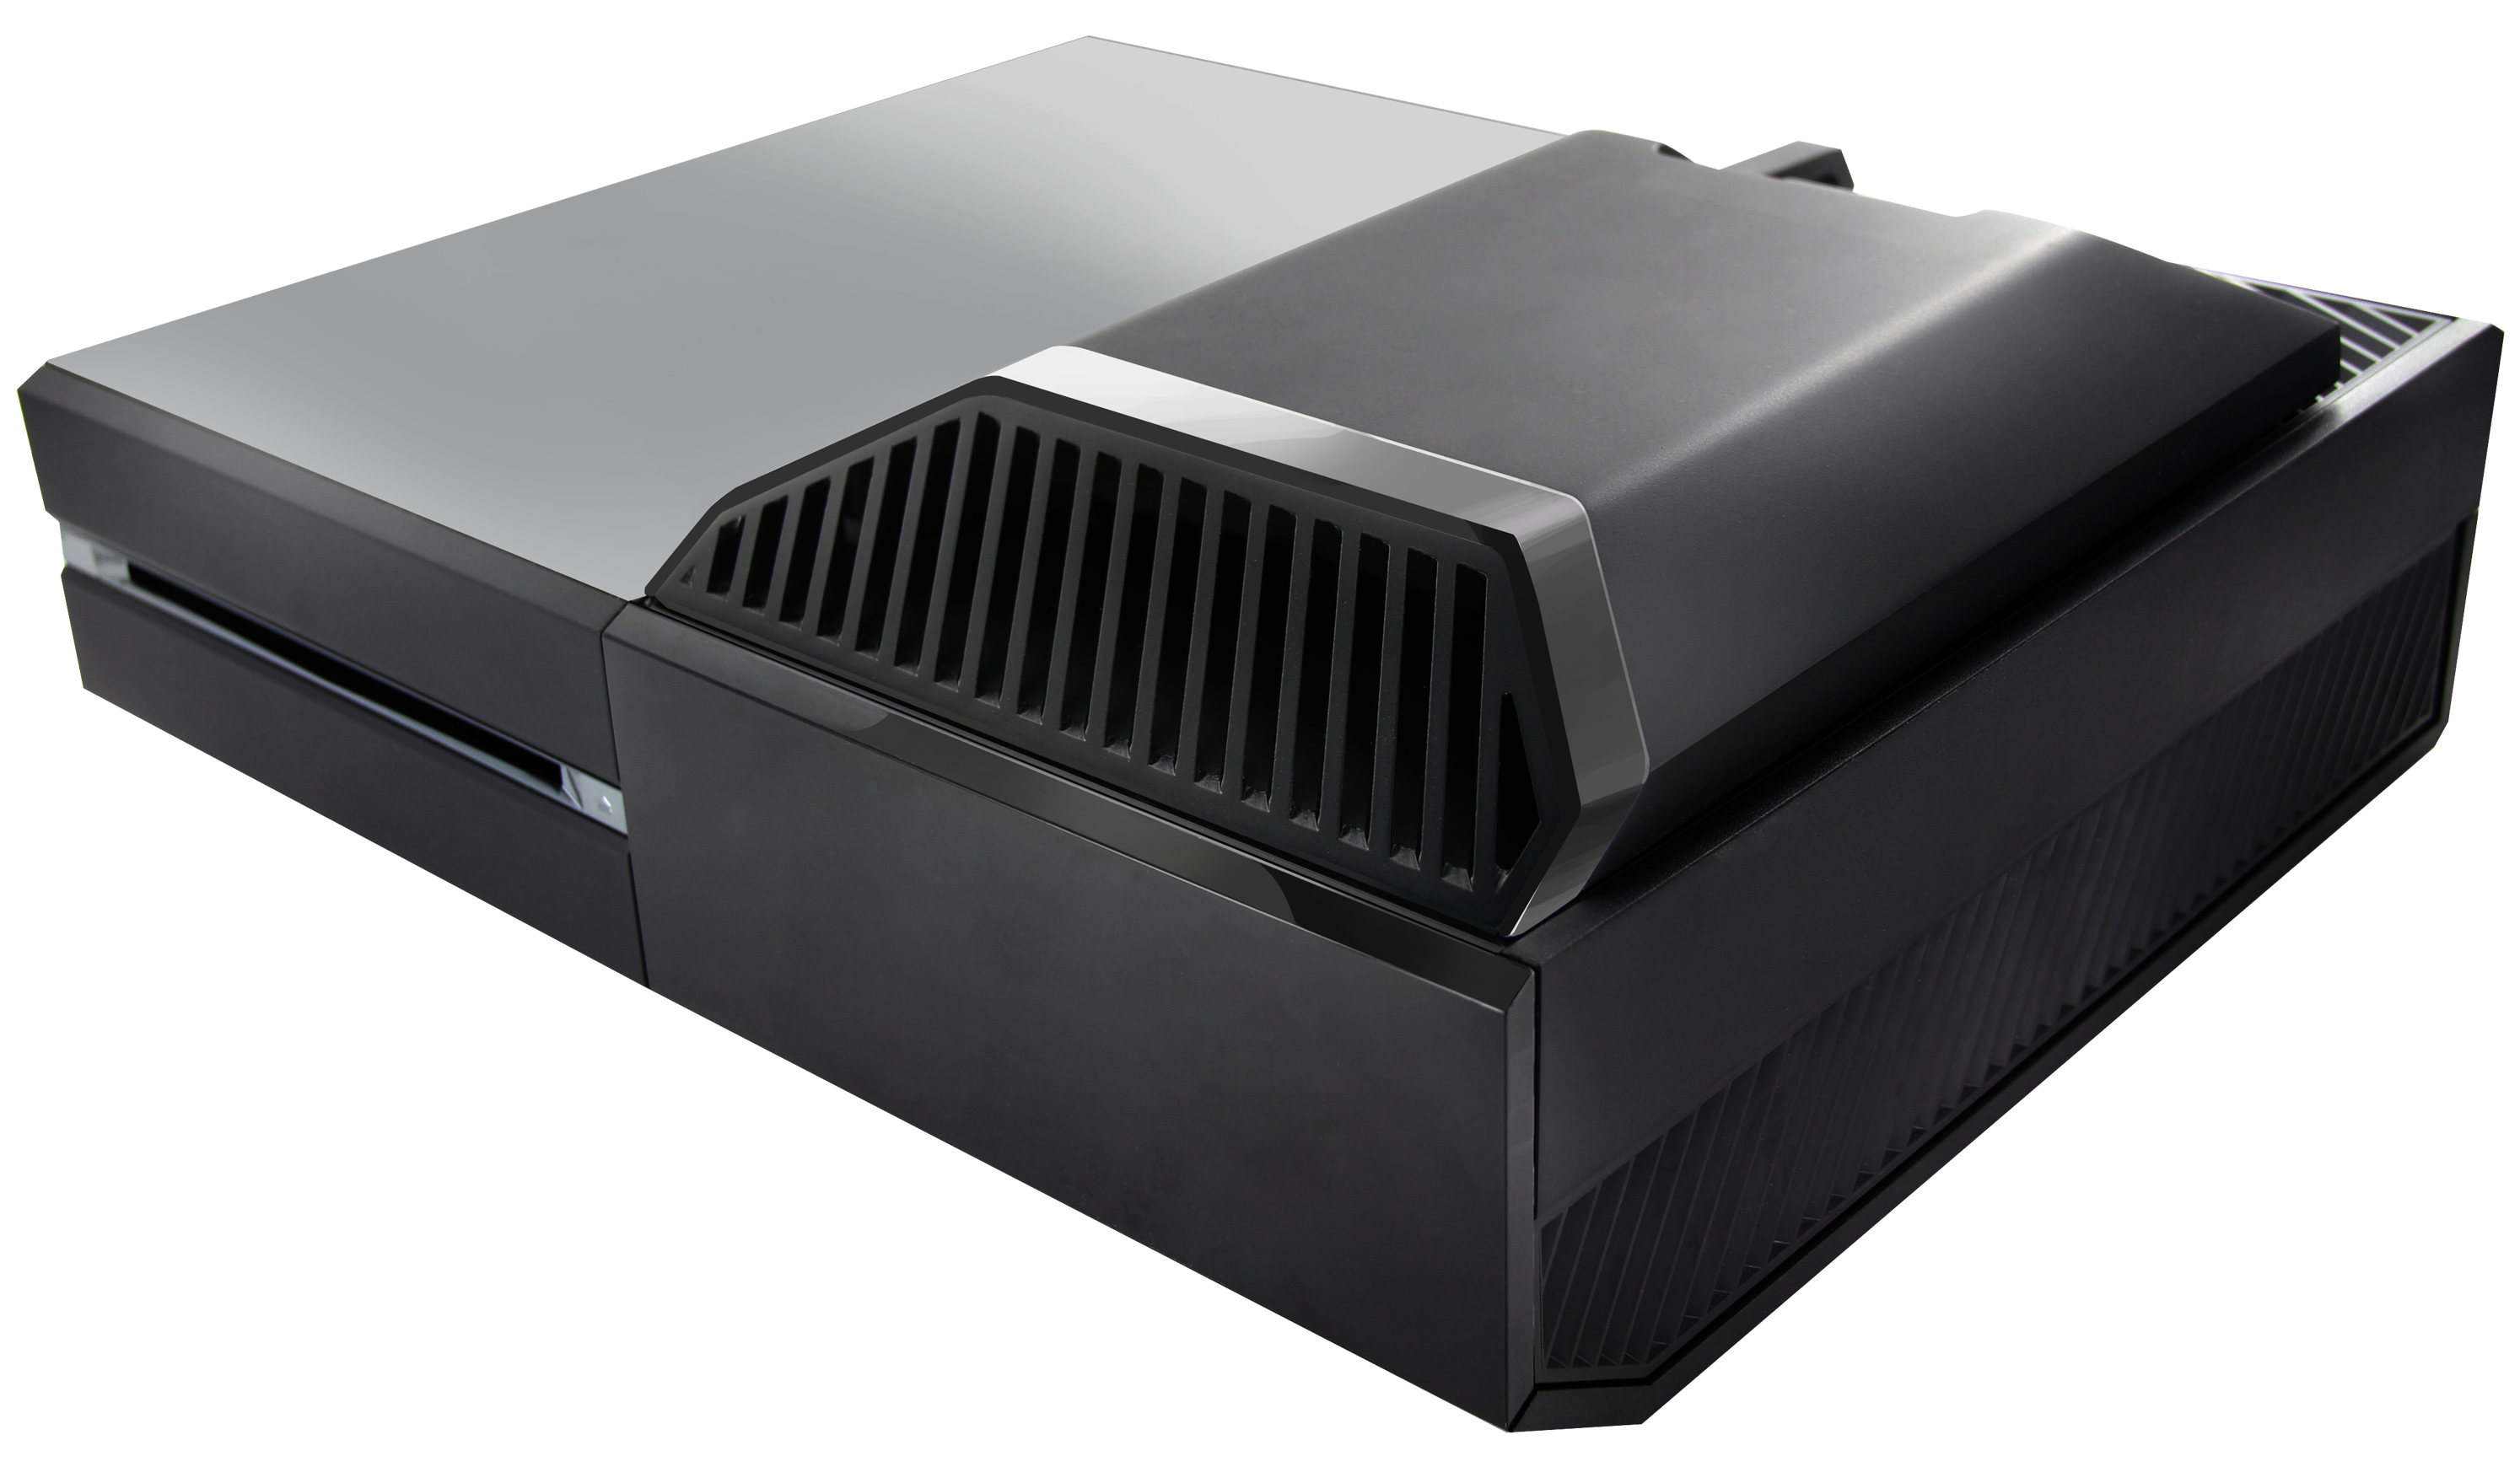 spread cool winter air with nyko's intercooler for xbox® one